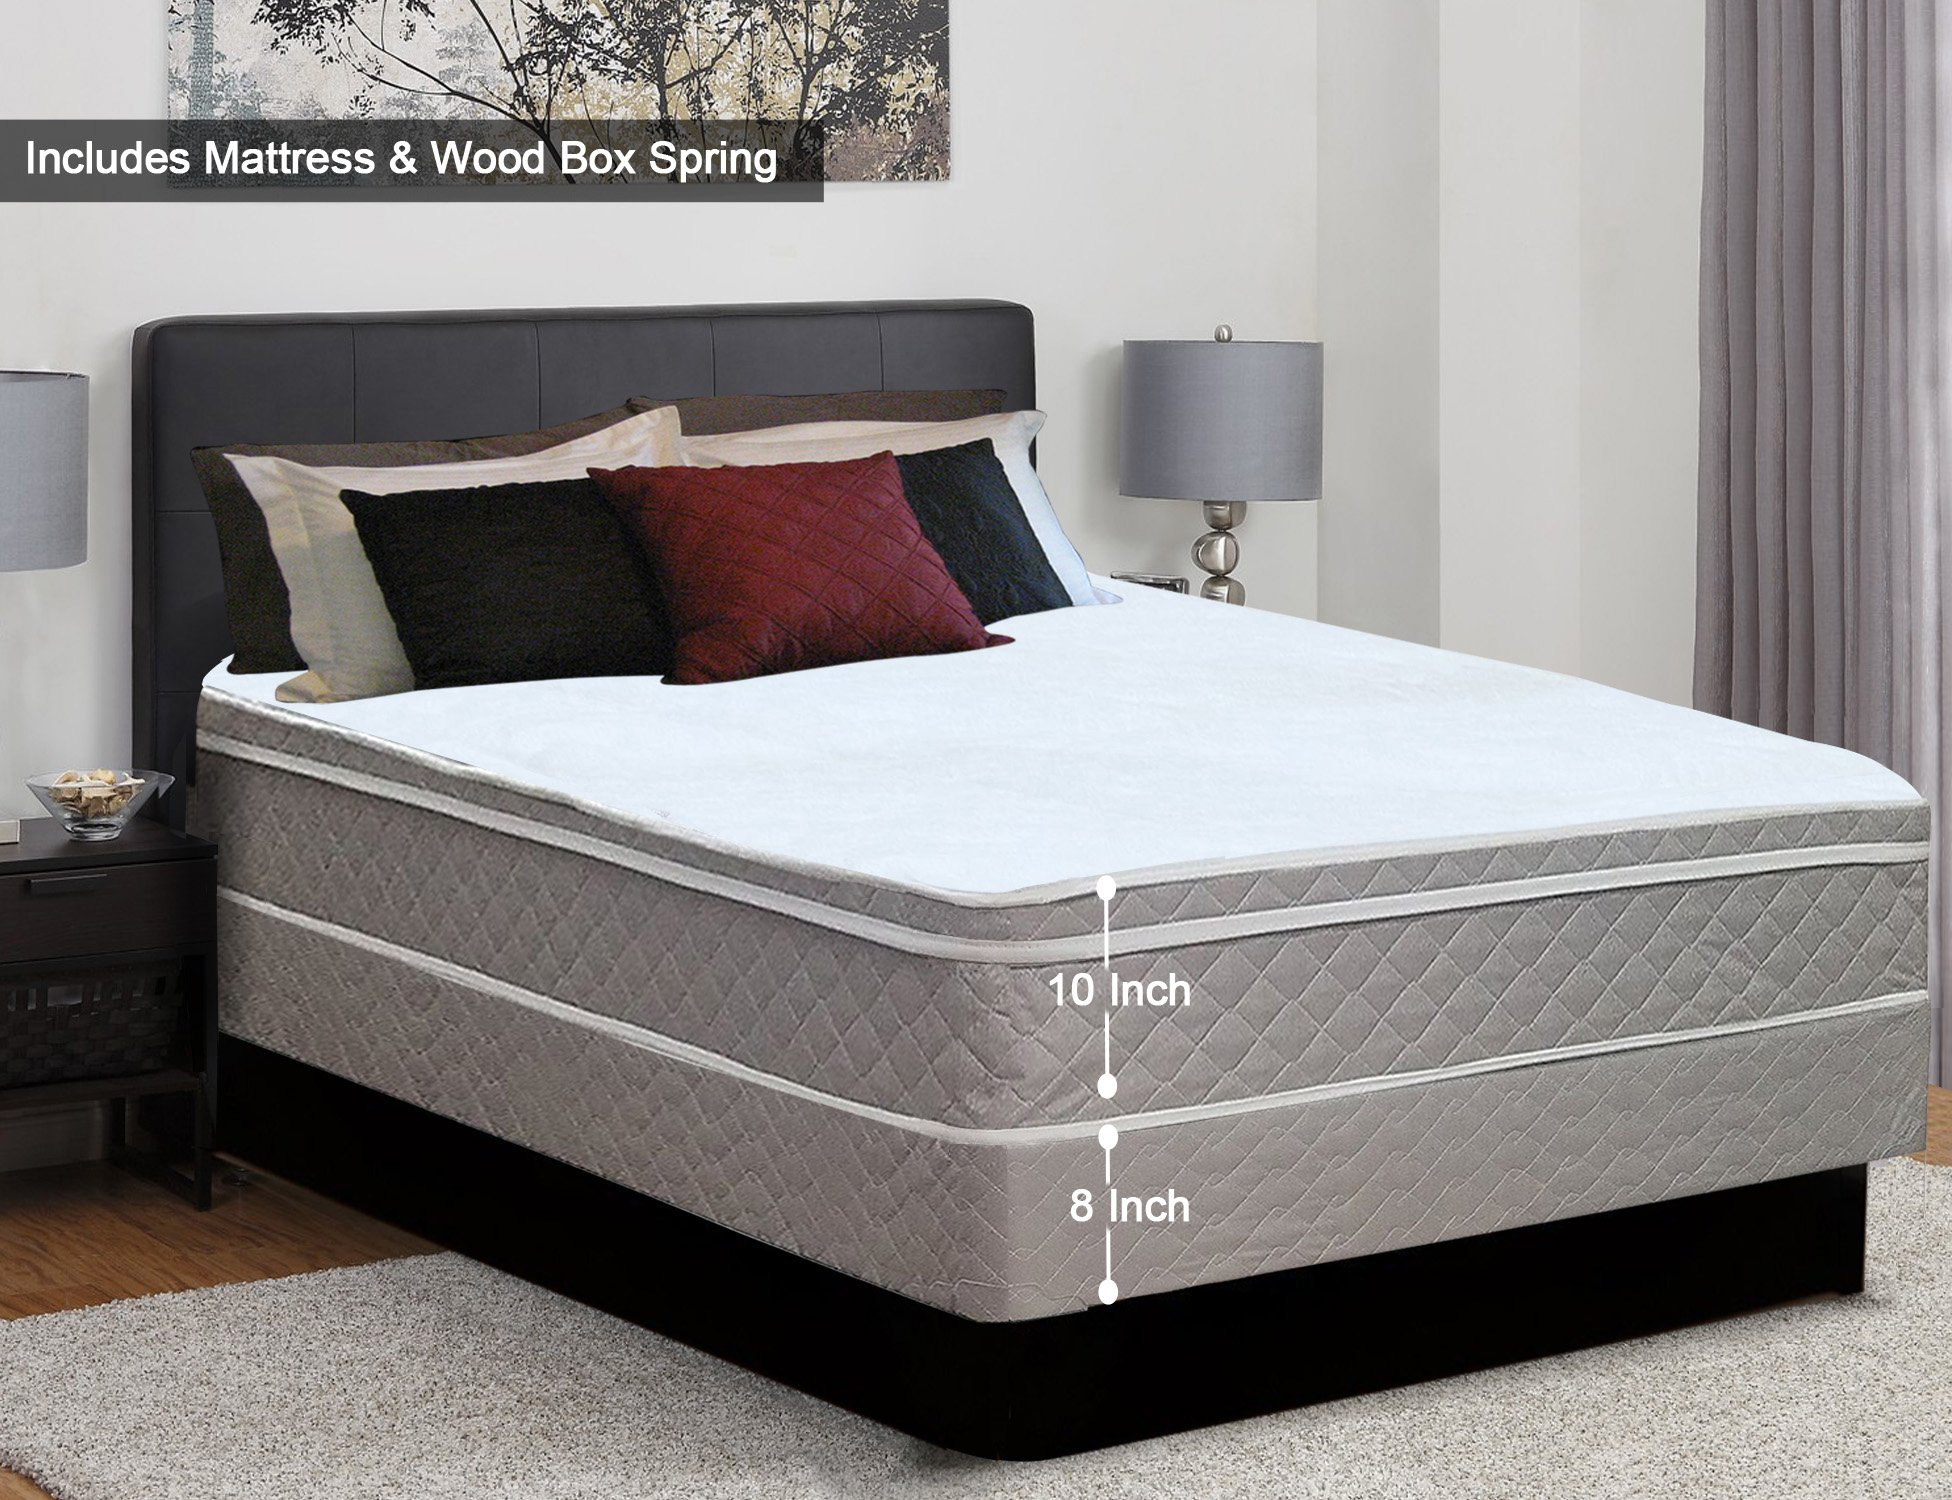 Spring Solution, 10-inch Plush Eurotop Pillowtop Innerspring Mattress And 8'' Box Spring/Foundation Set, Twin Size